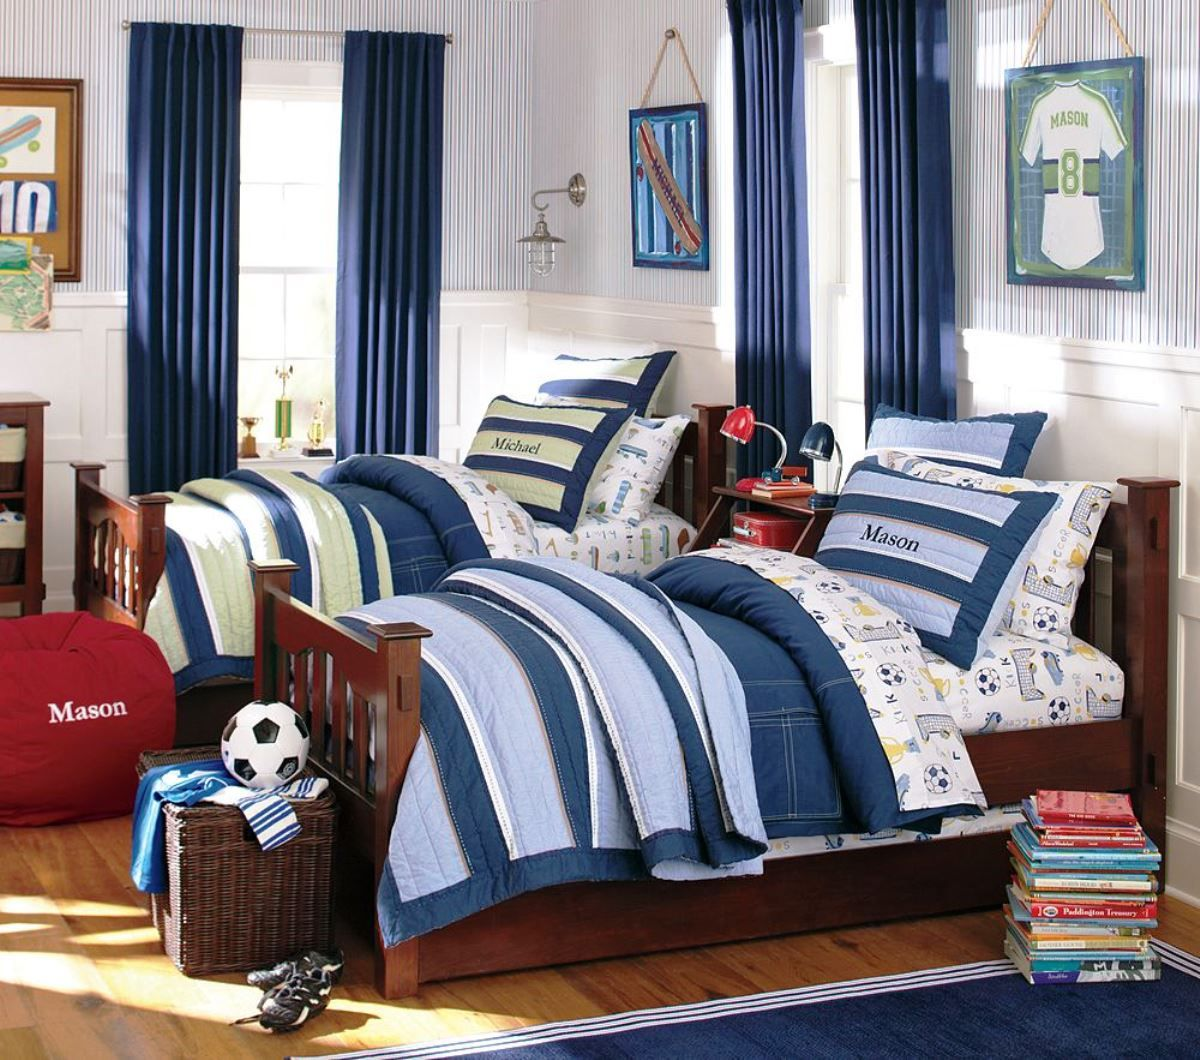 Sports Decor For Boys Bedroom Sport Boy Room Design Ideas Boy Rooms Ideas Pinterest Navy